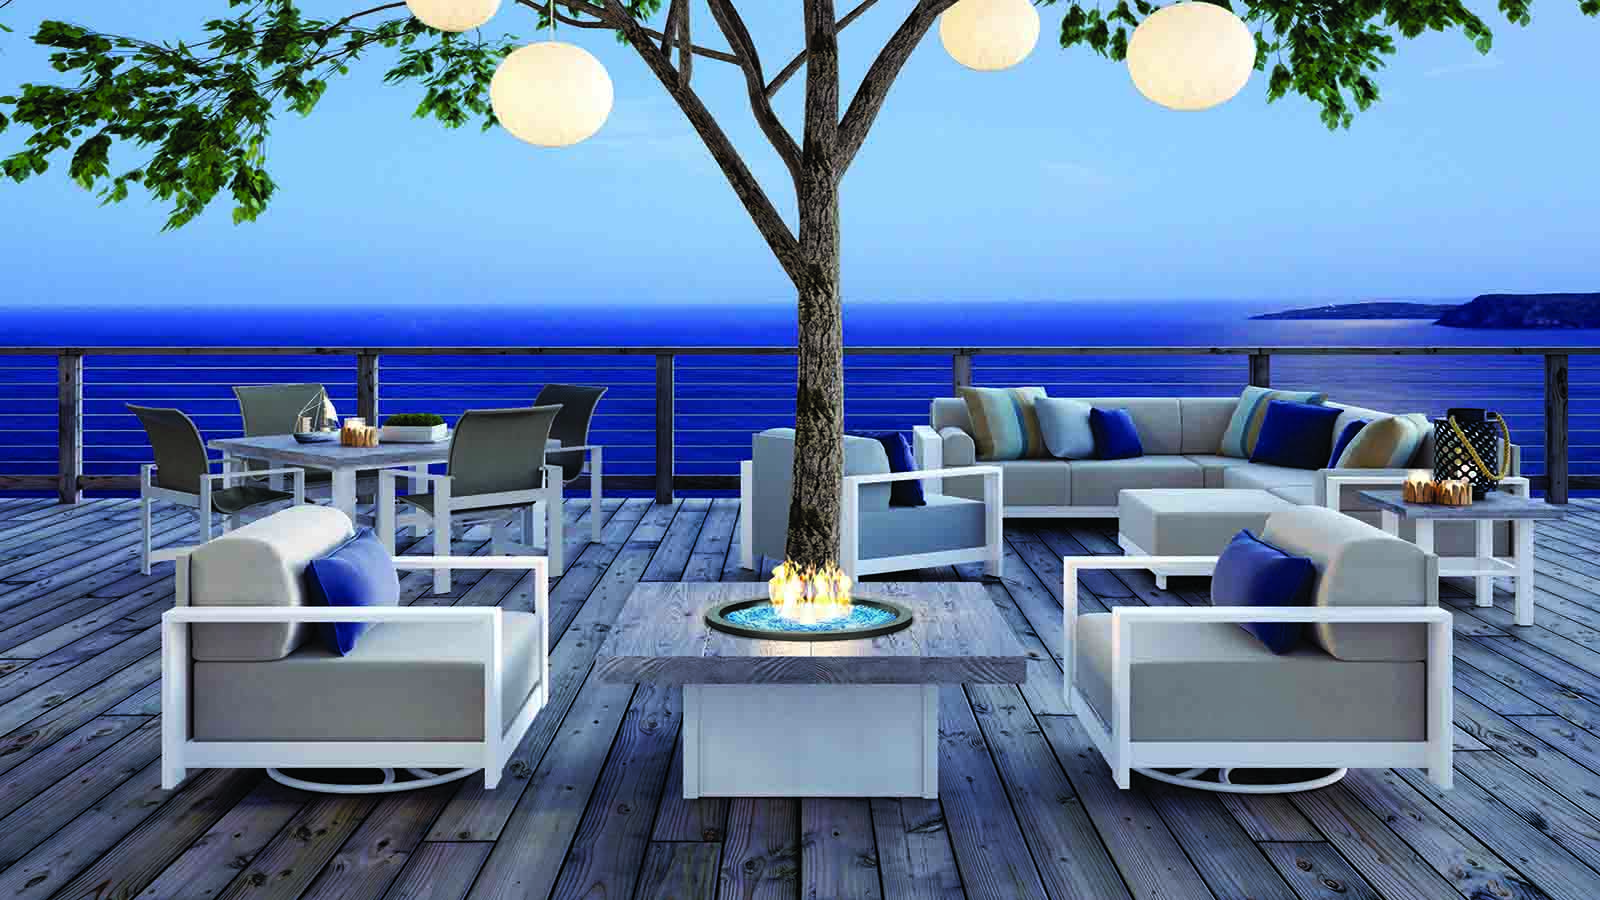 High quality outdoor gas fire tables and patio furniture